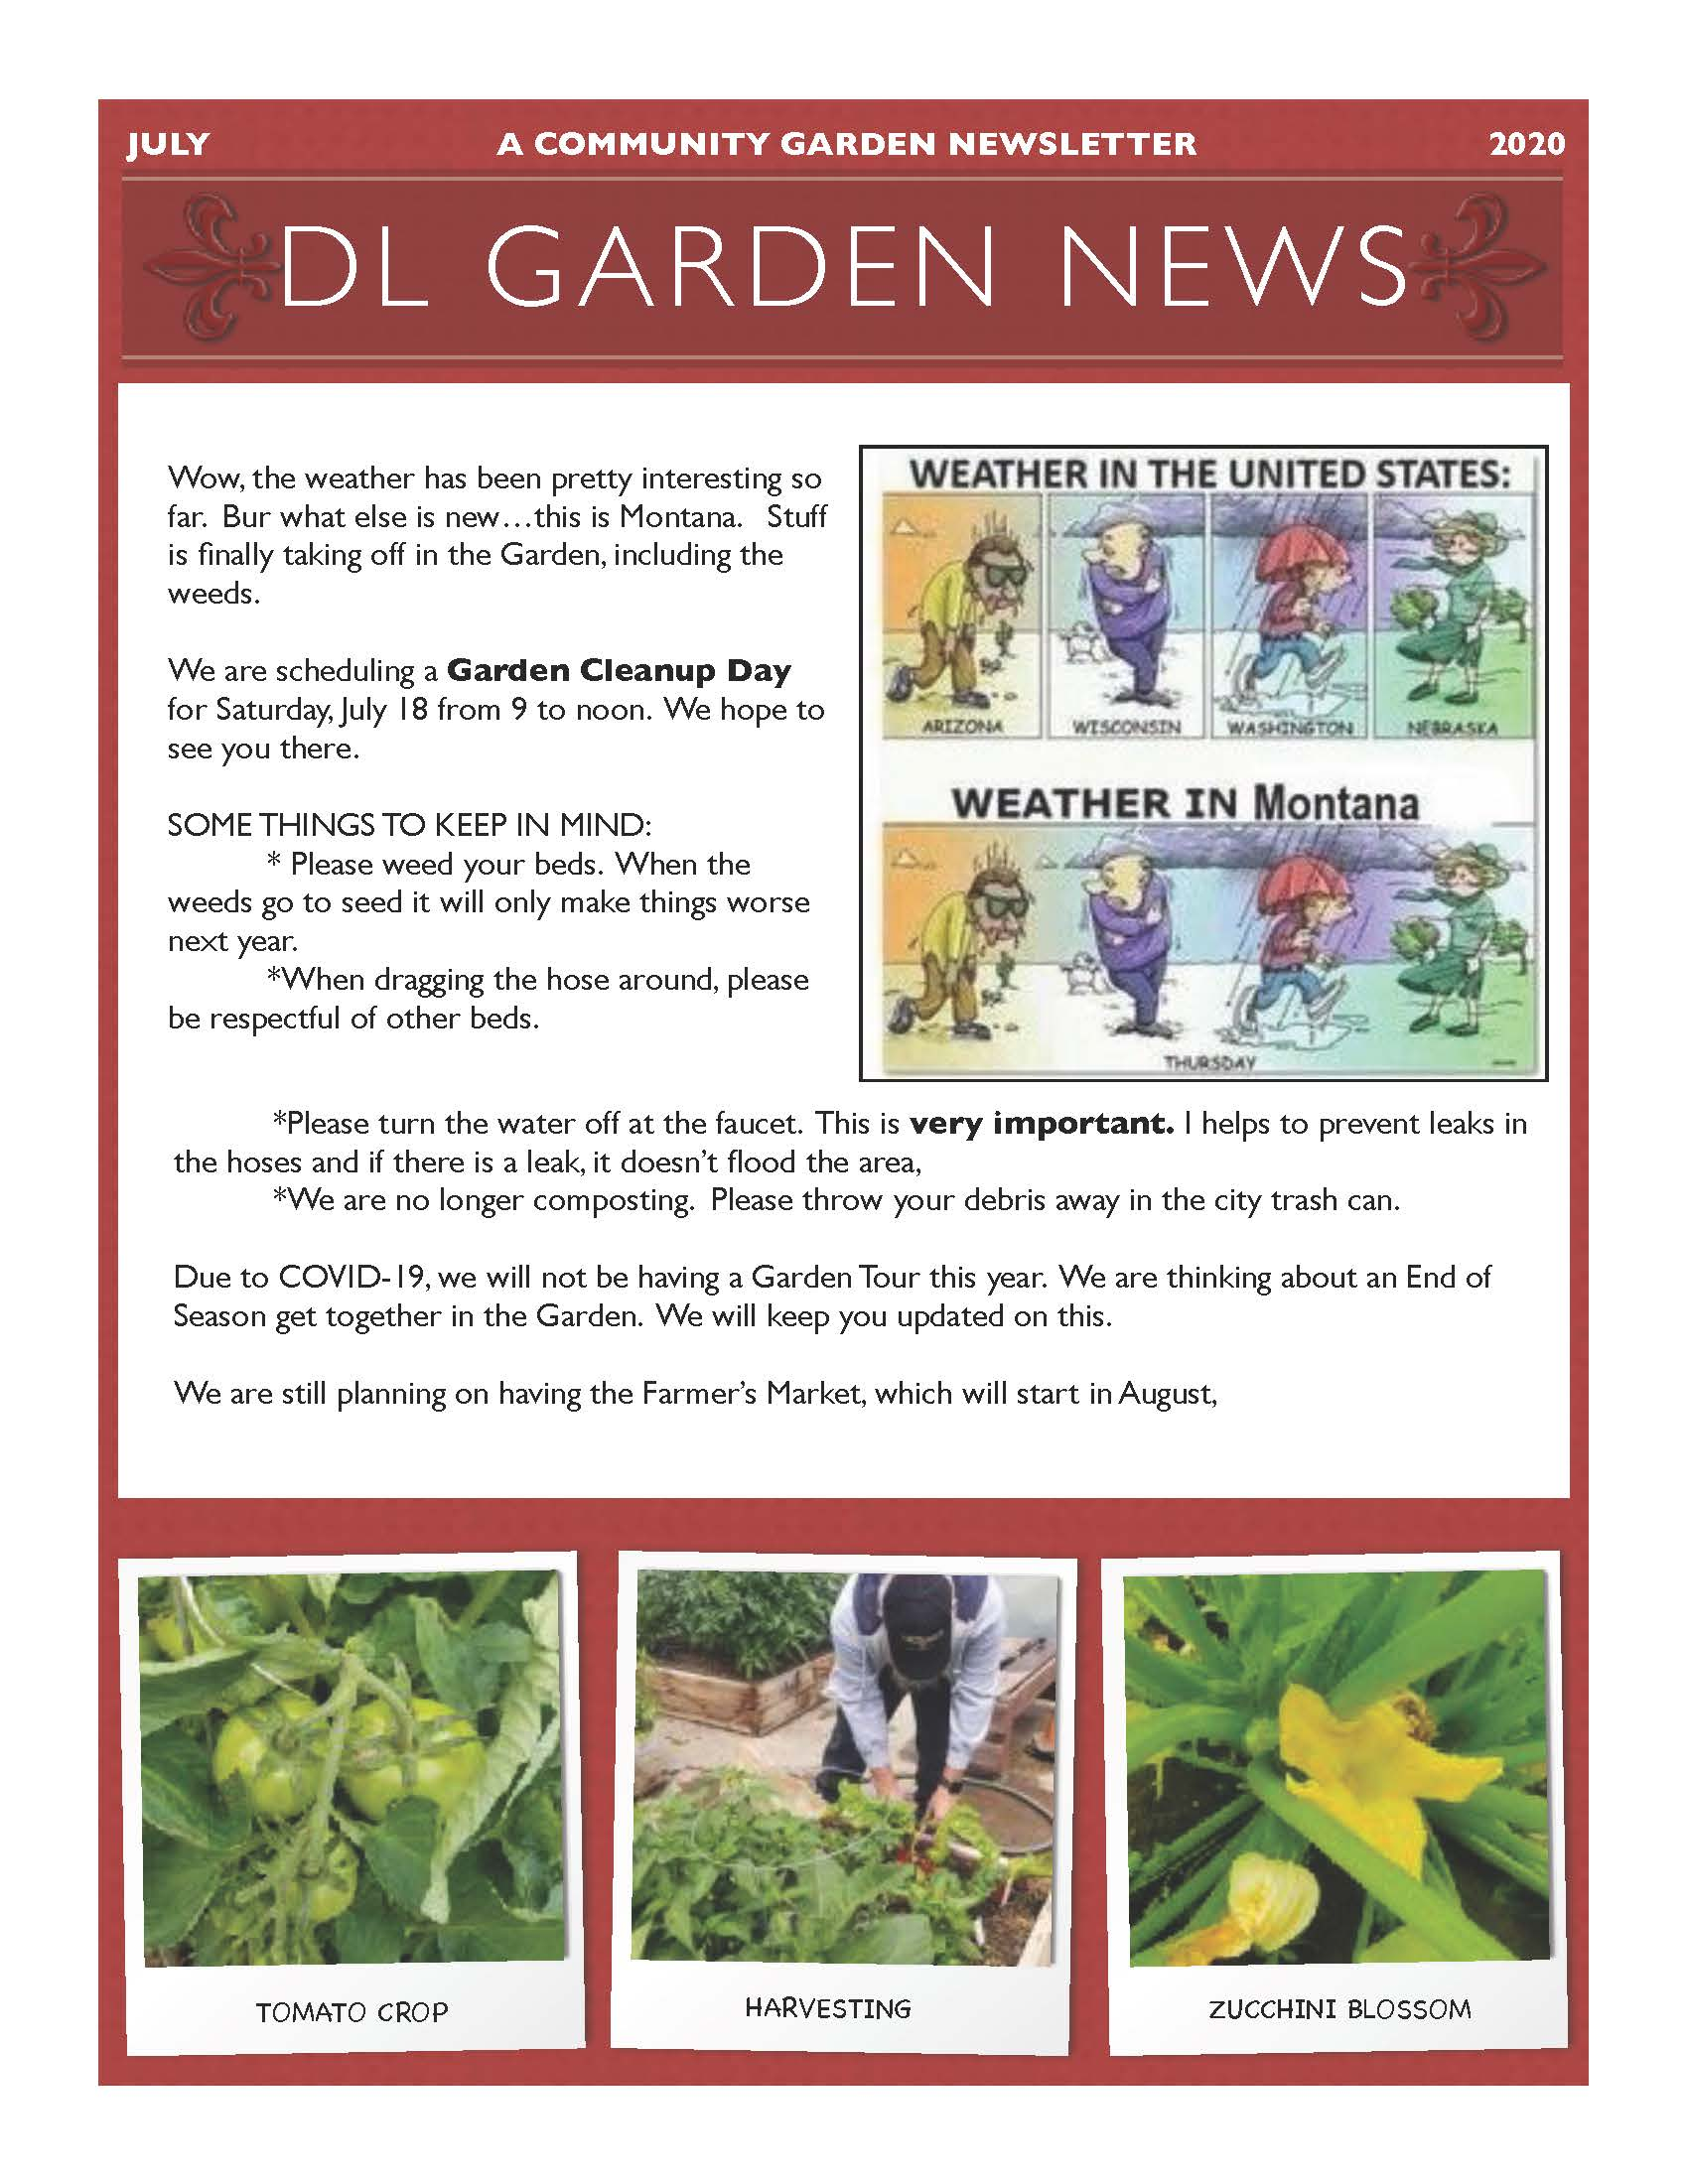 JULY A COMMUNITY GARDEN NEWSLETTER 2020 TOMATO CROP HARVESTING ZUCCHINI BLOSSOM DL GARDEN NEWS Wow, the weather has been pretty interesting so far. Bur what else is new…this is Montana. Stuff is finally taking off in the Garden, including the weeds. We are scheduling a Garden Cleanup Day for Saturday, July 18 from 9 to noon. We hope to see you there. SOME THINGS TO KEEP IN MIND: * Please weed your beds. When the weeds go to seed it will only make things worse next year. *When dragging the hose around, please be respectful of other beds. *Please turn the water off at the faucet. This is very important. I helps to prevent leaks in the hoses and if there is a leak, it doesn't flood the area, *We are no longer composting. Please throw your debris away in the city trash can. Due to COVID-19, we will not be having a Garden Tour this year. We are thinking about an End of Season get together in the Garden. We will keep you updated on this. We are still planning on having the Farmer's Market, which will start in August,